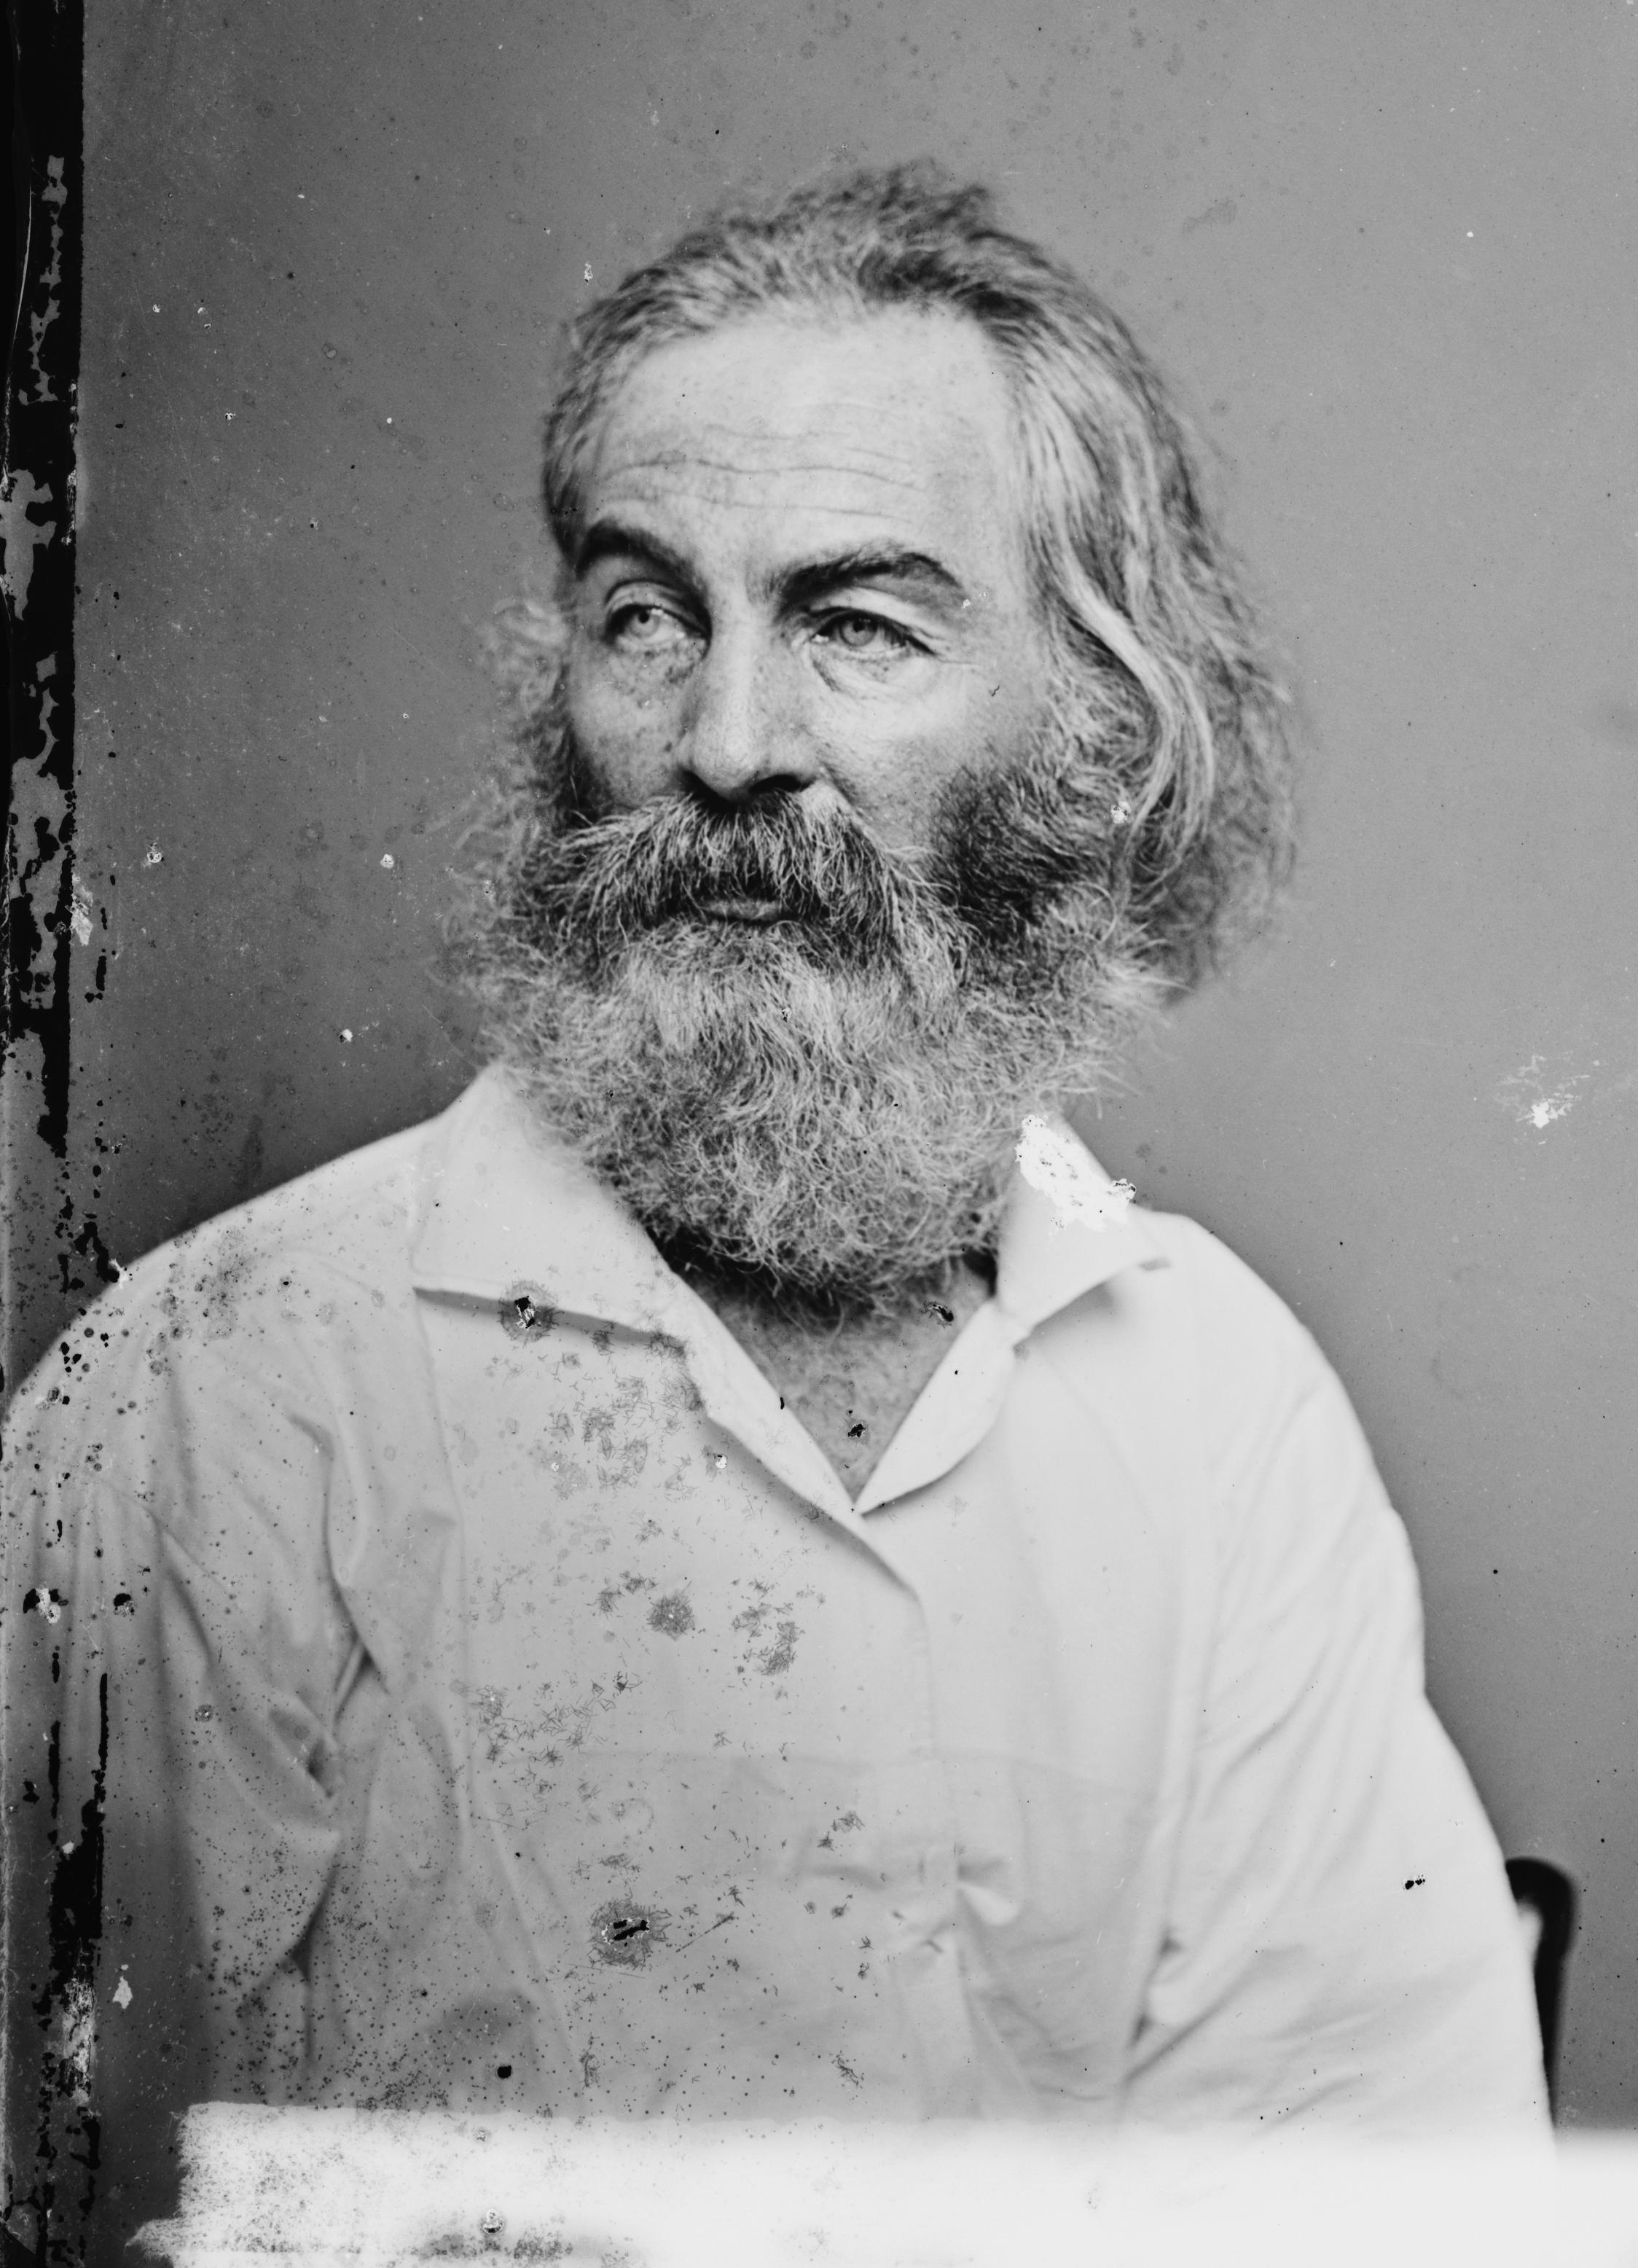 Walt Whitman. Photo courtesy of the Library of Congress Prints and Photographs Division, via Wikimedia Commons.